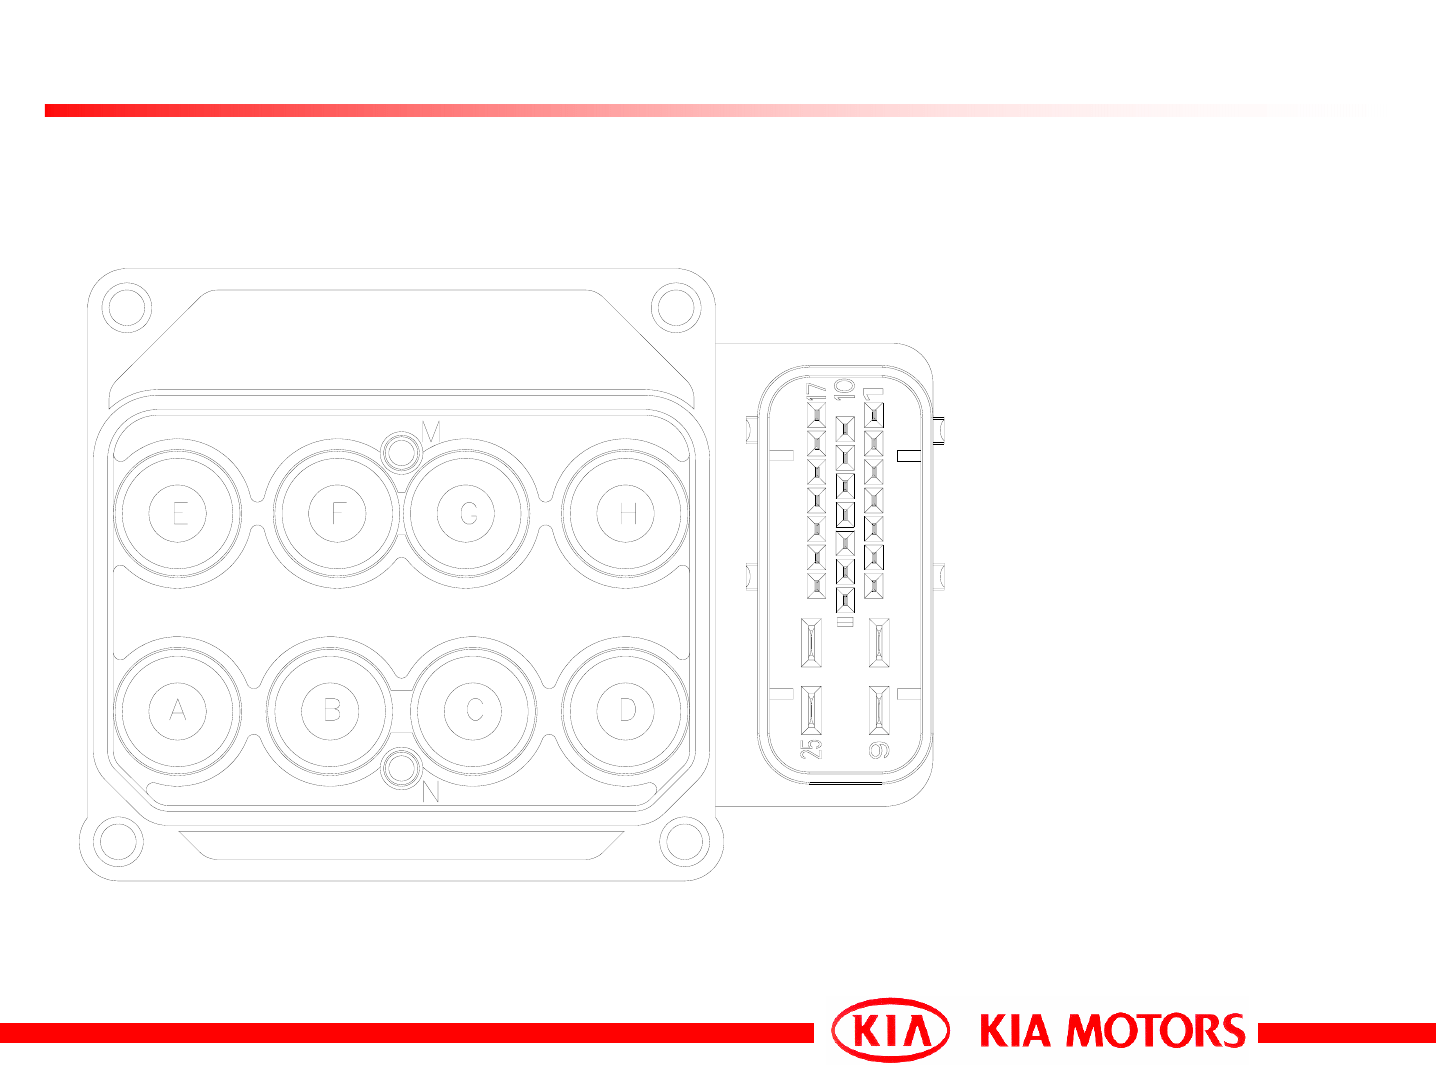 Kia Carens Misc Document Electric Wiring Diagram